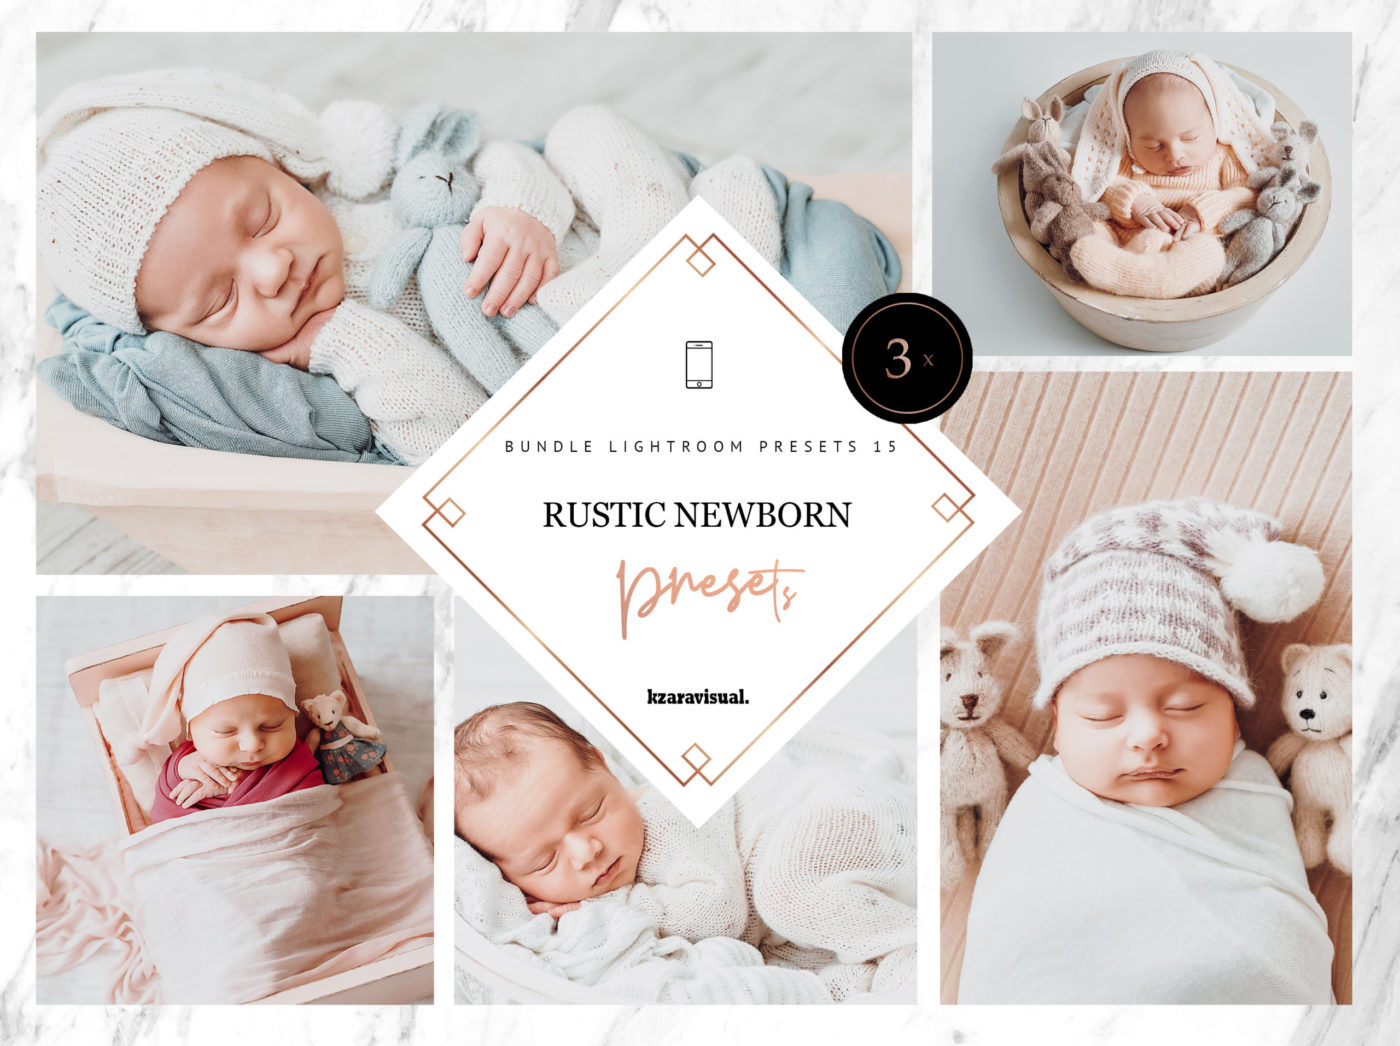 Rustic Newborn Mobile Lightroom Presets